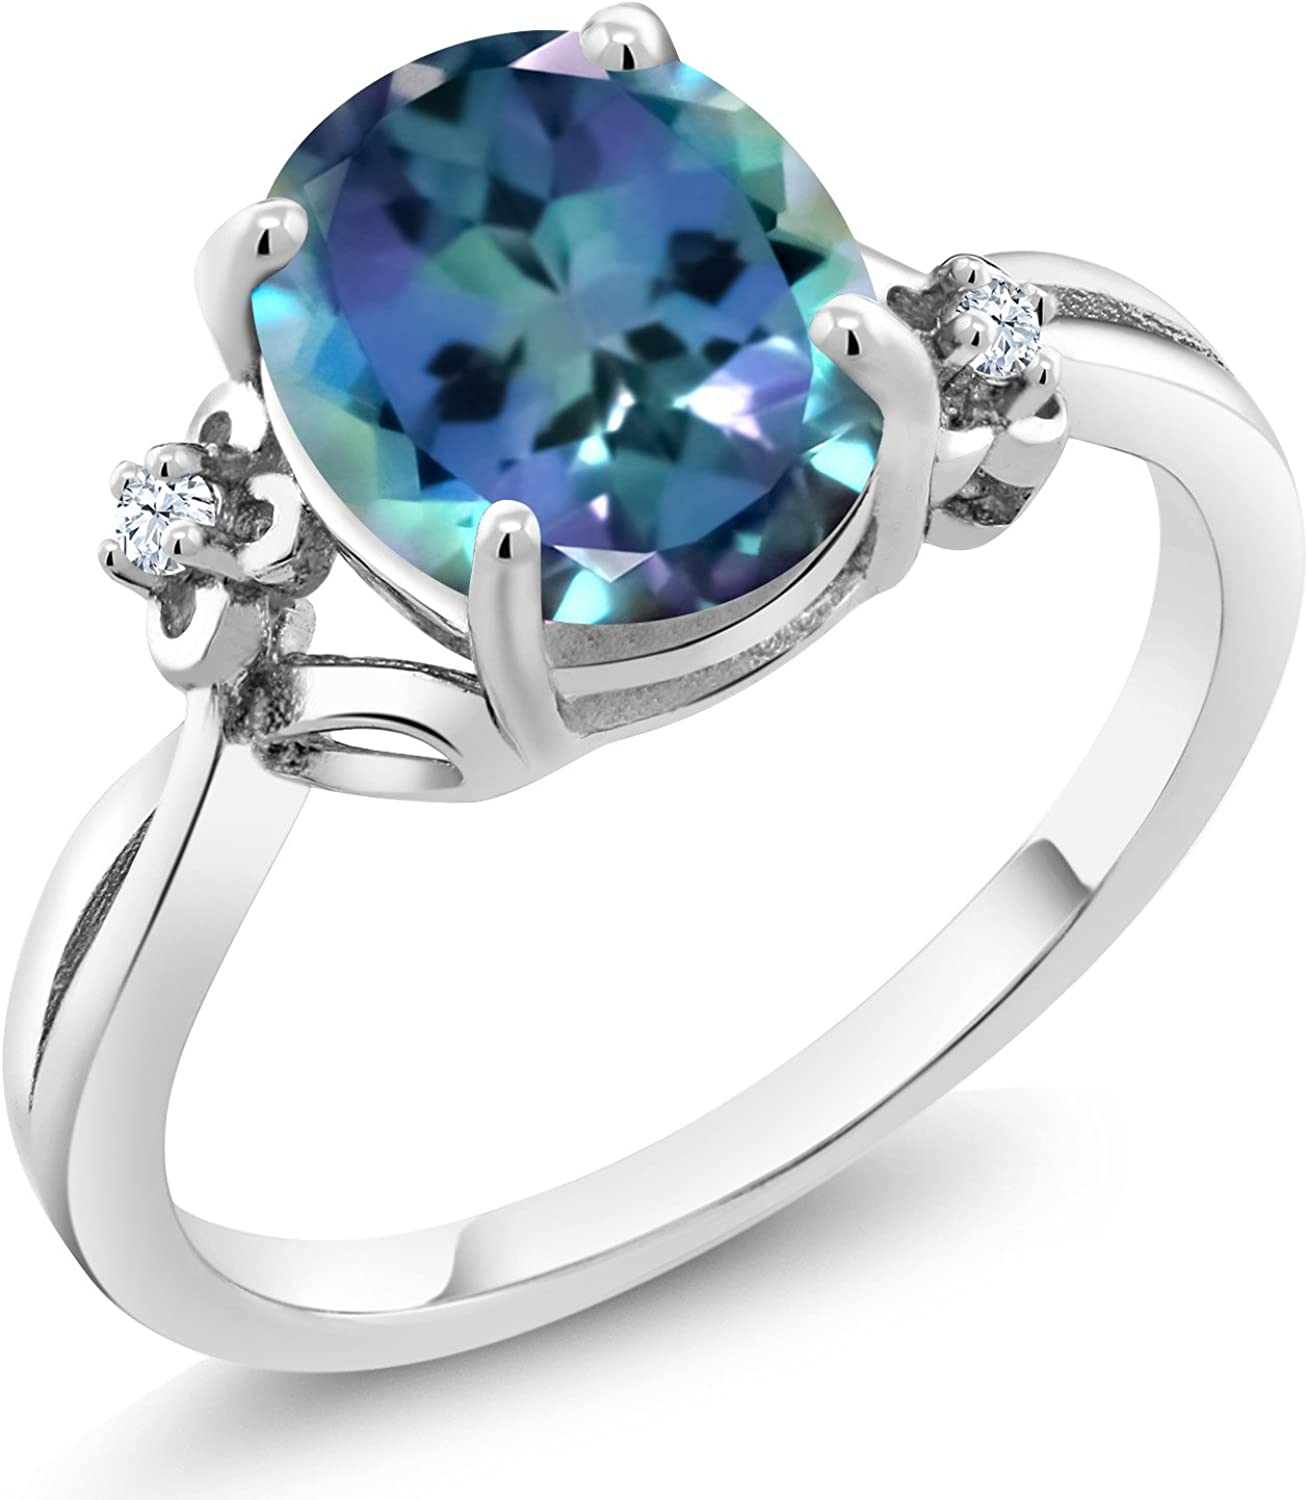 925 Sterling Silver 3.00 MM Round Mystic Topaz Stackable Women Ring